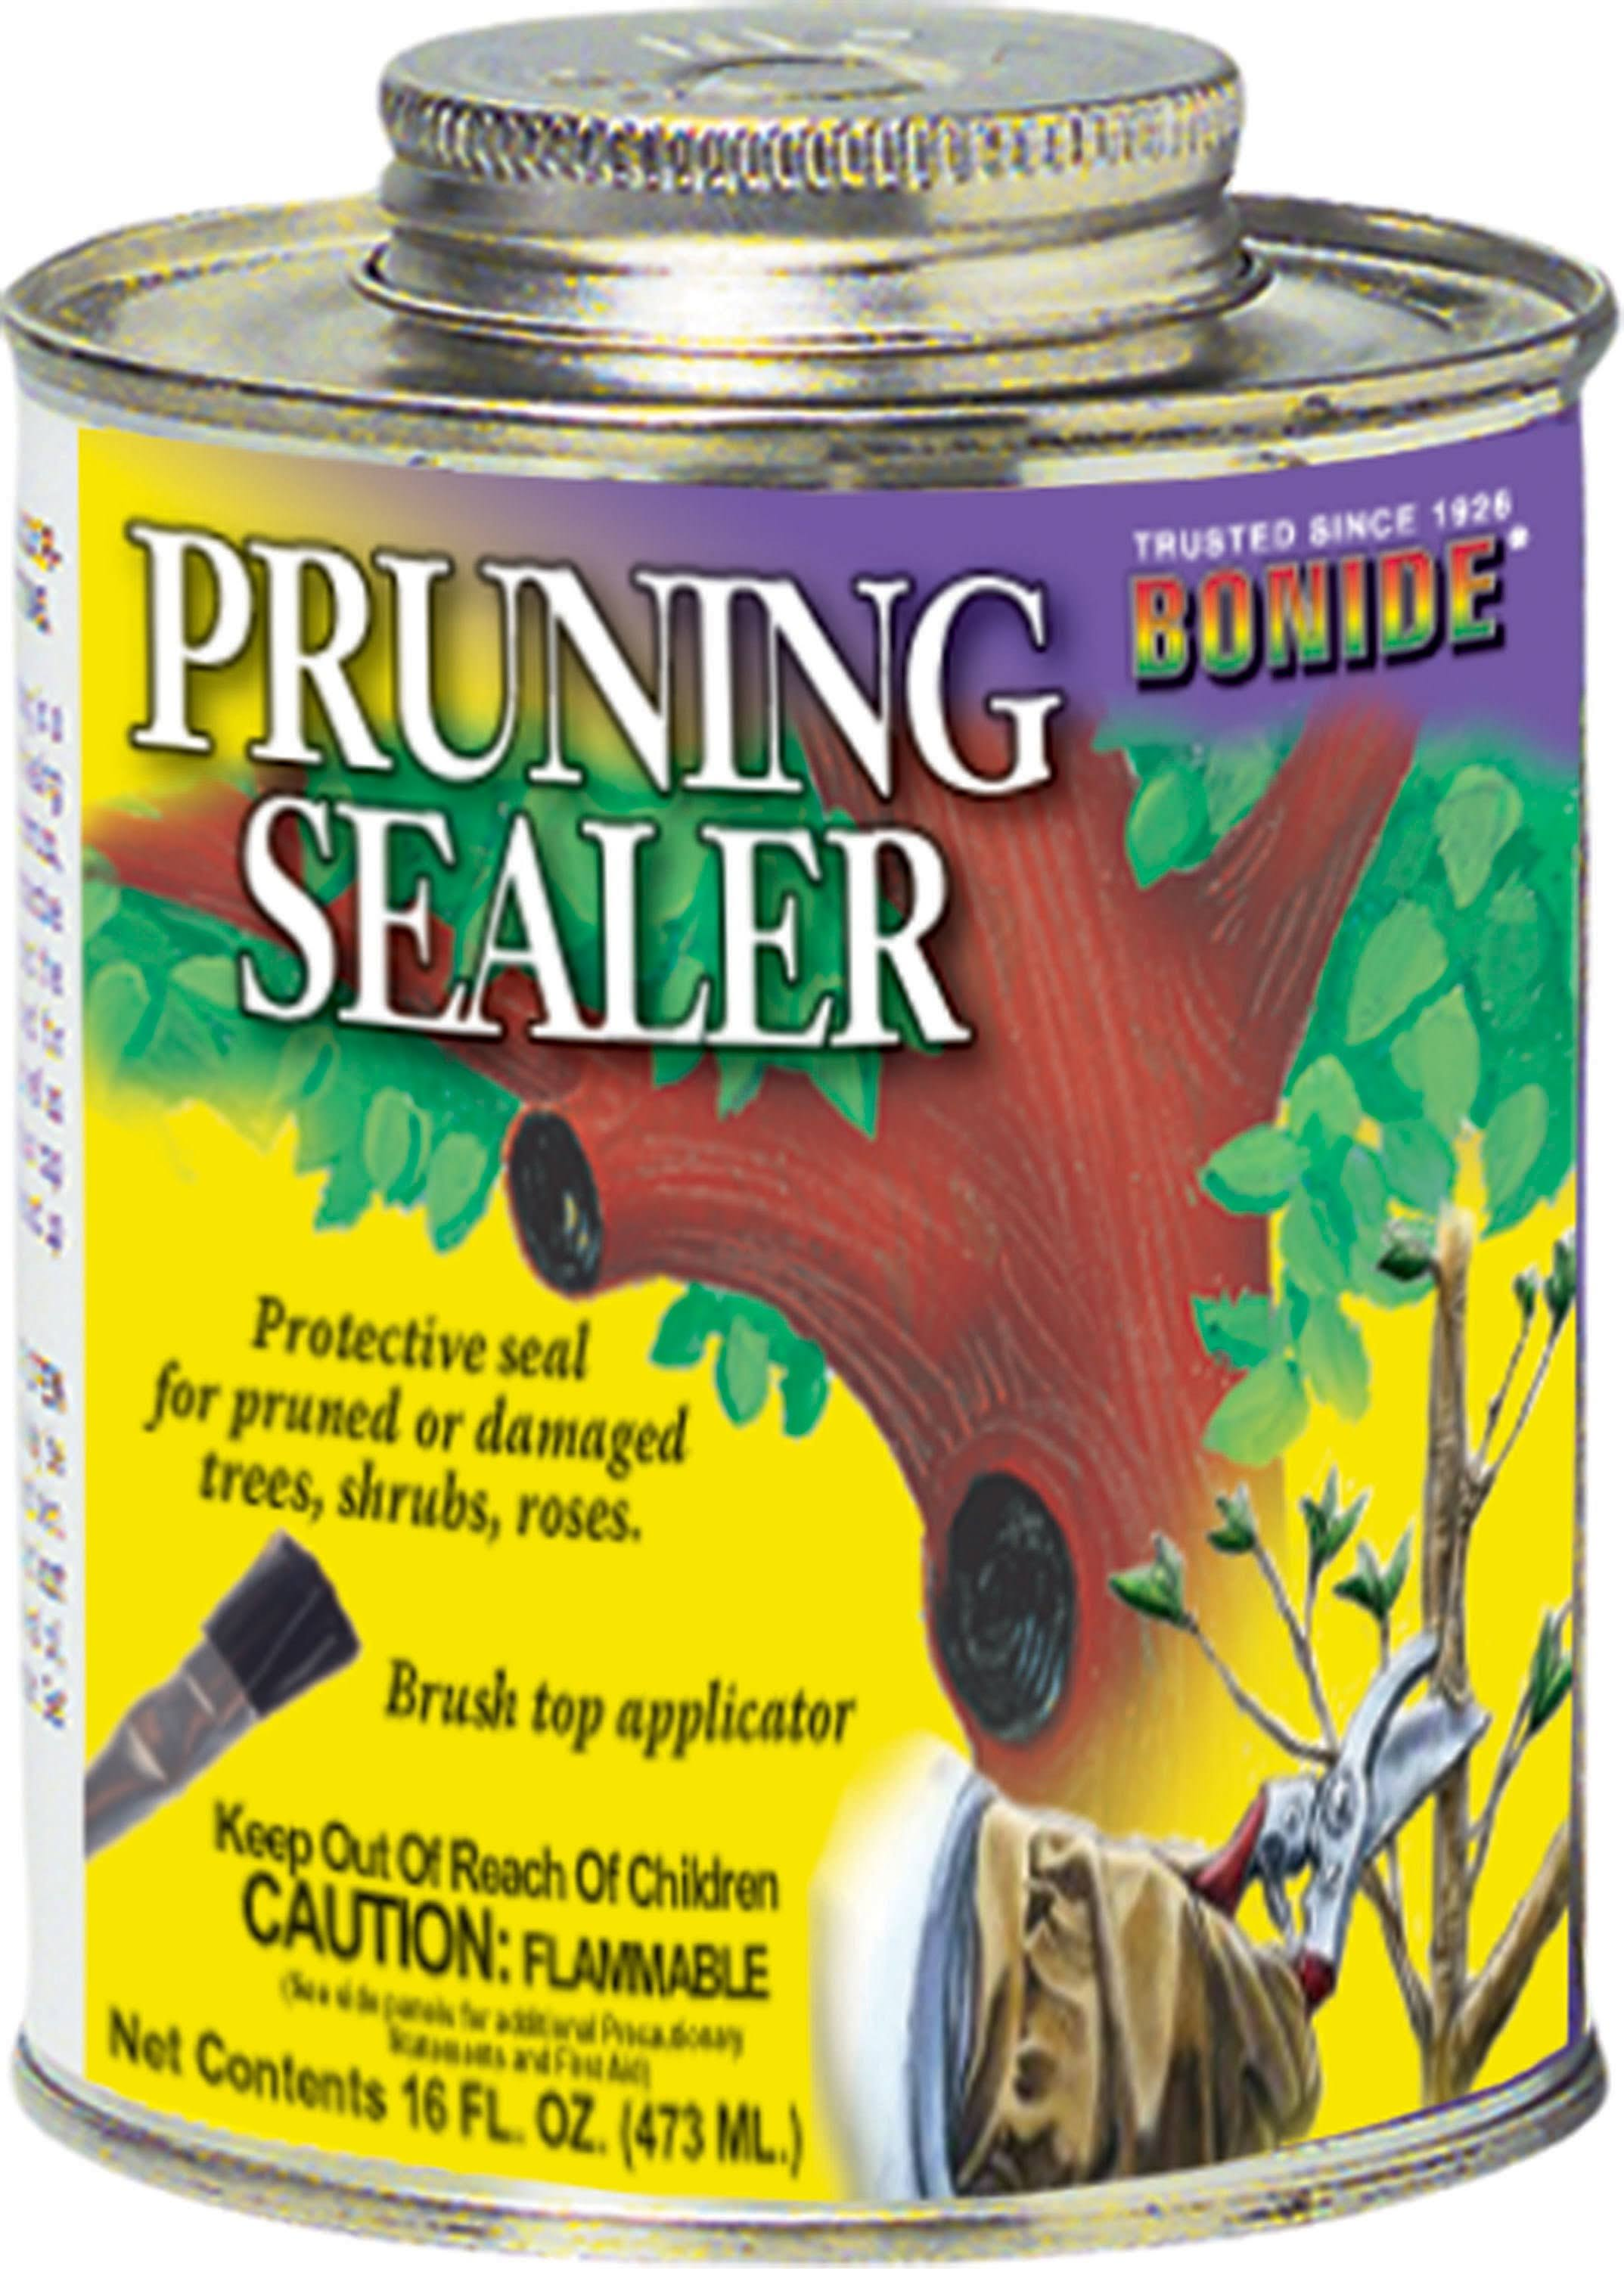 Bonide Brush Top Pruning Sealer Fertilizers - 16oz